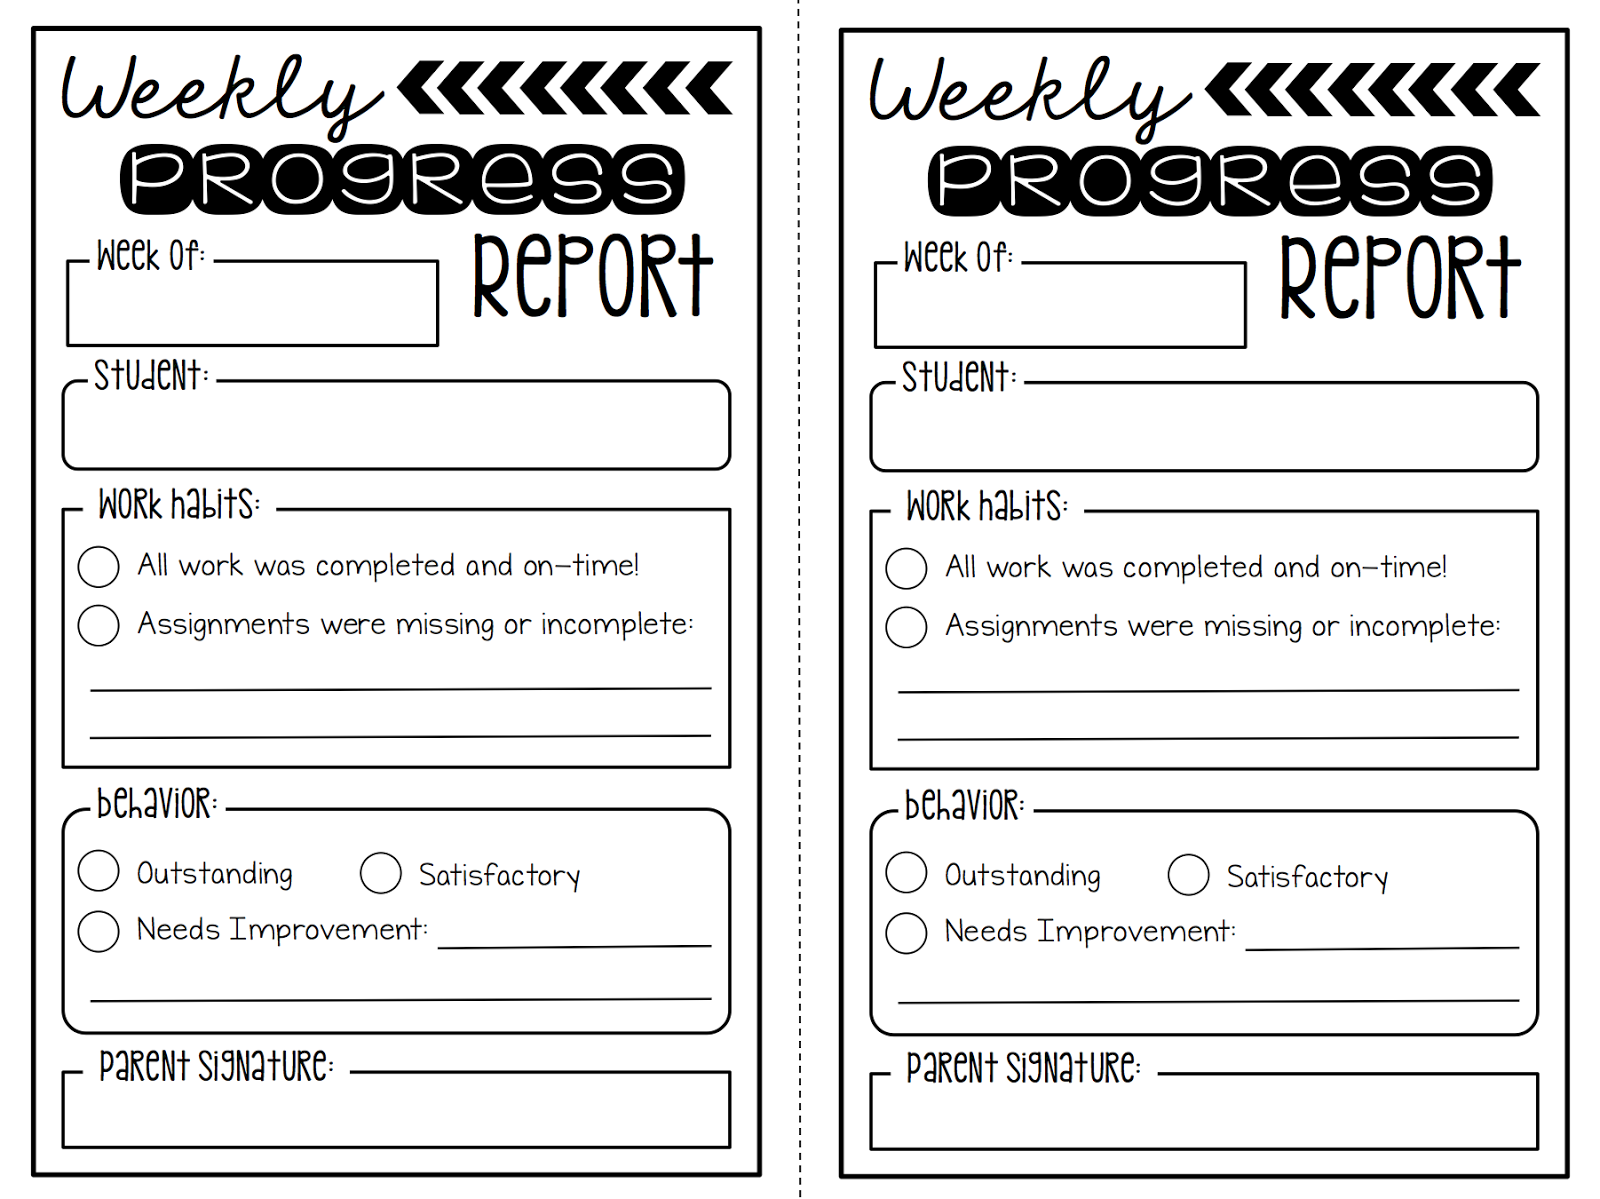 Summertime Revamp  Weekly Progress Reports Freebie  Create